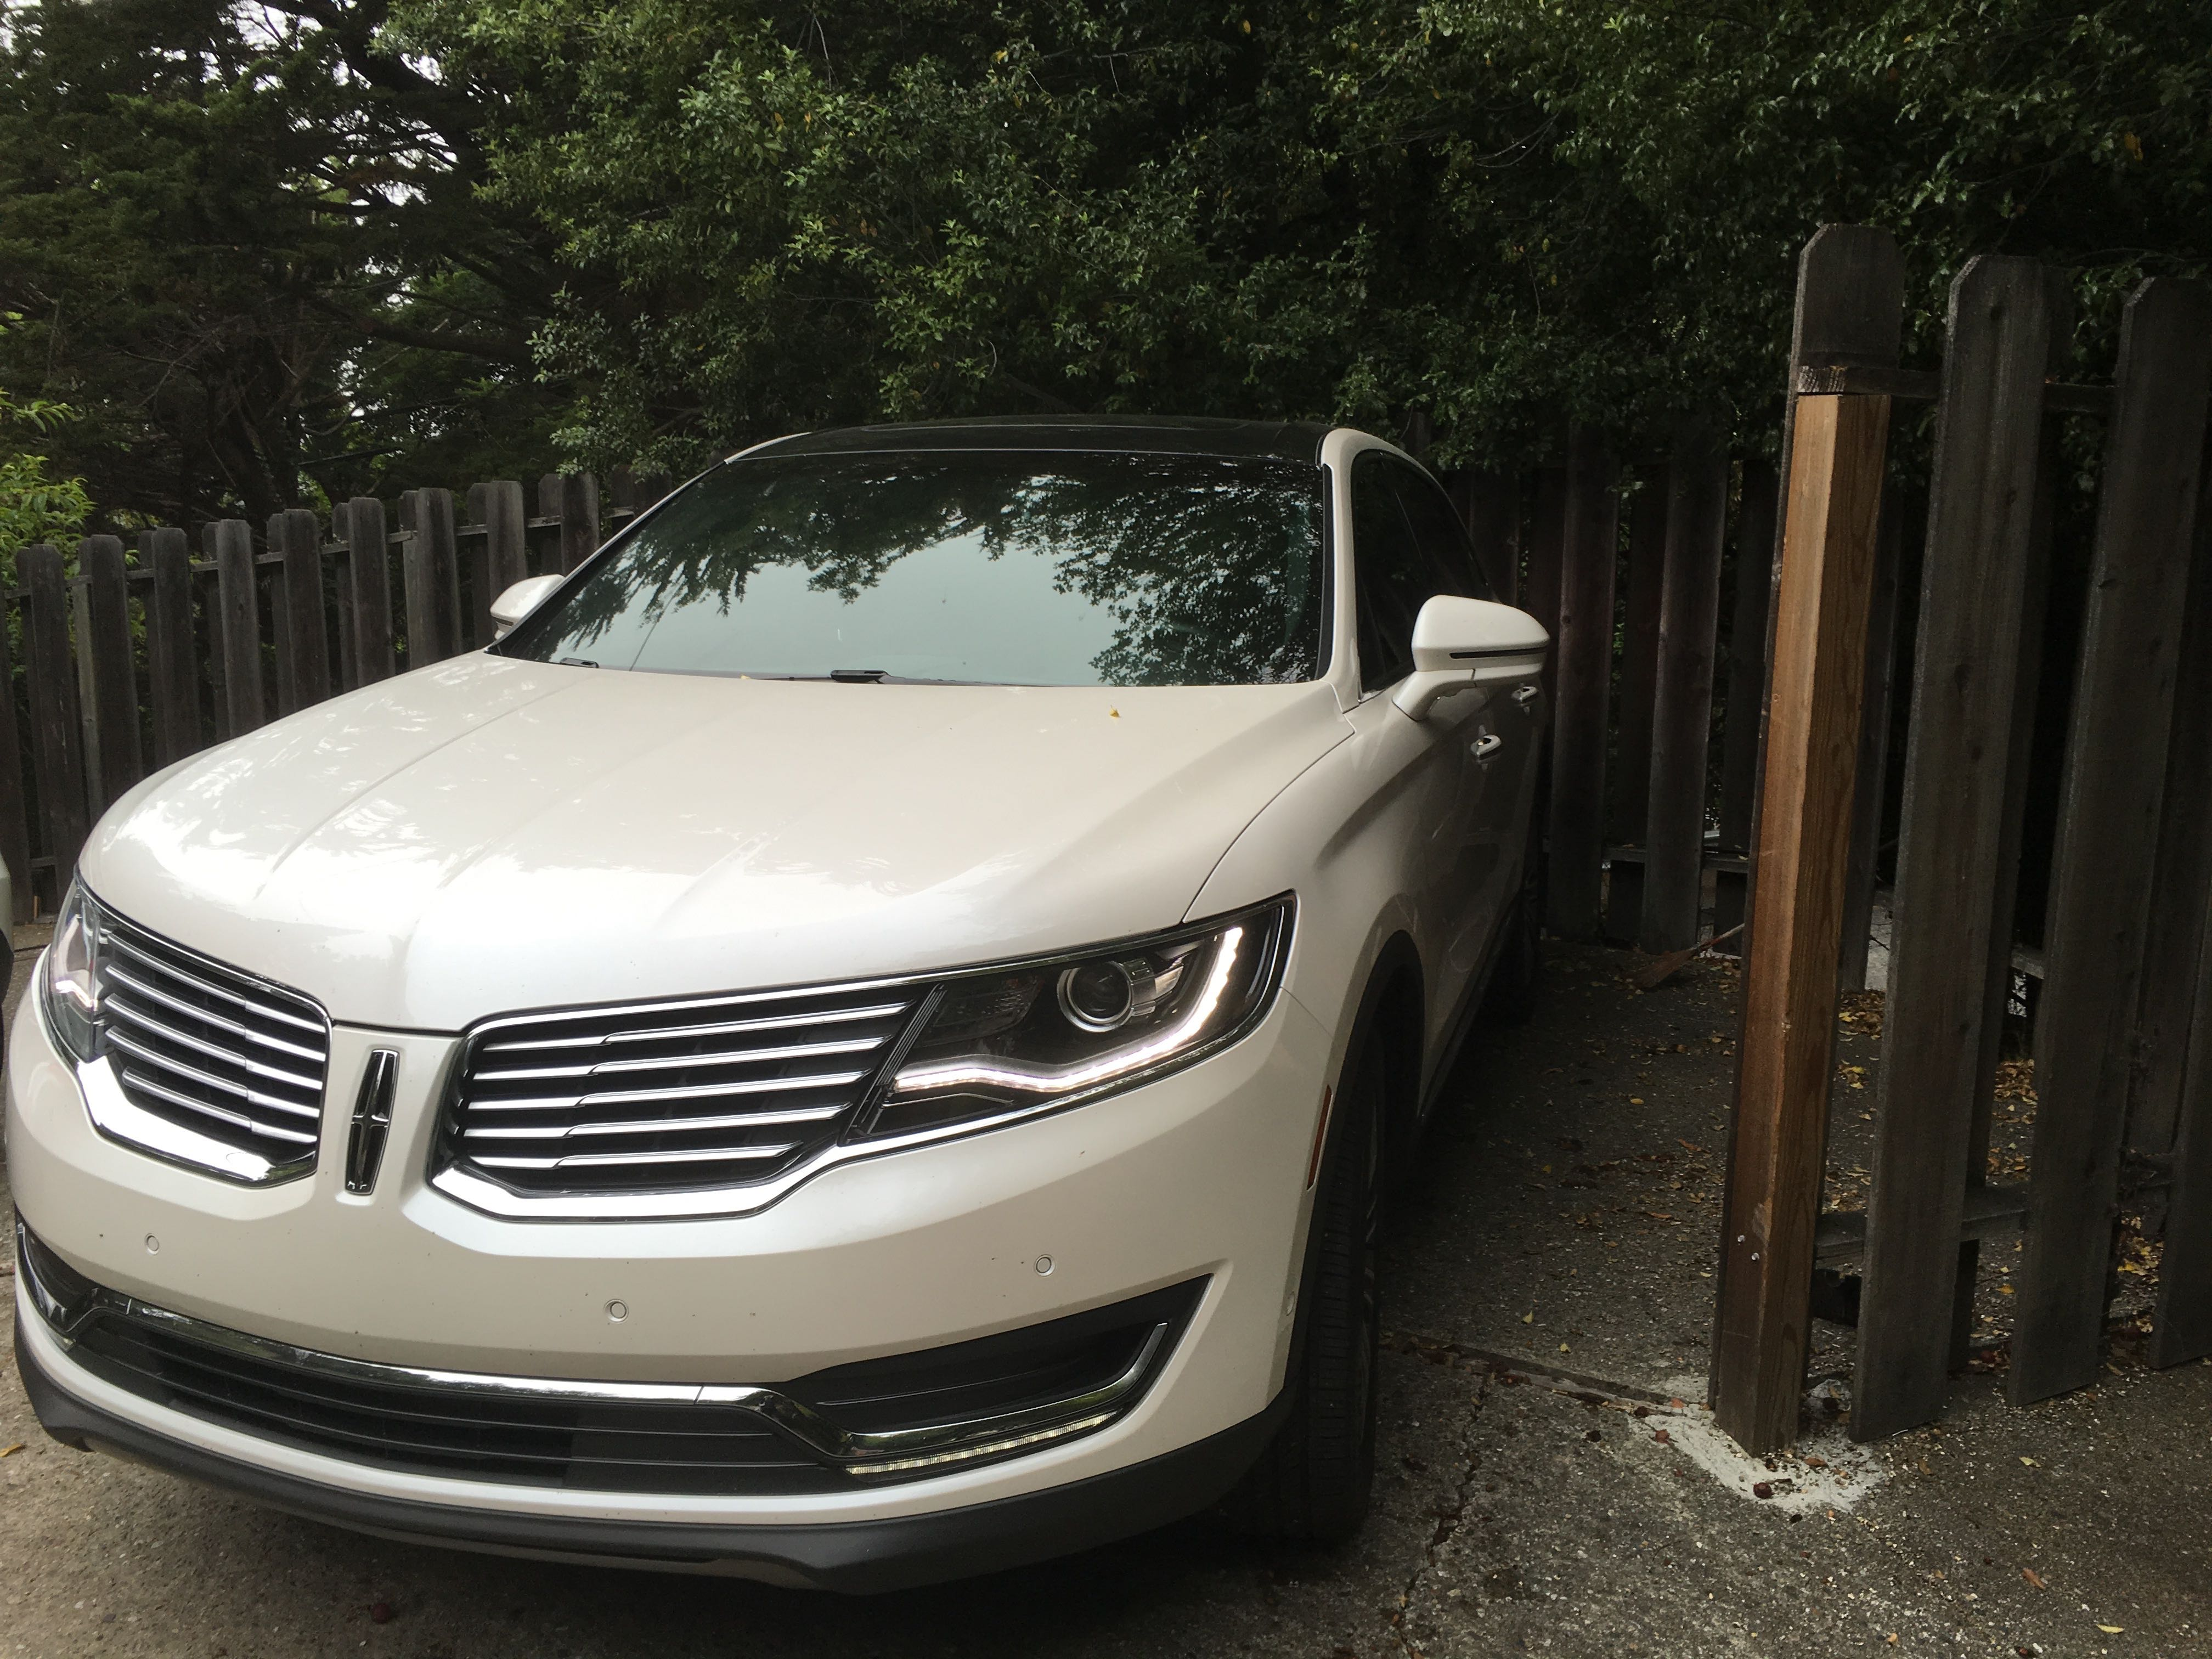 Lincoln parked